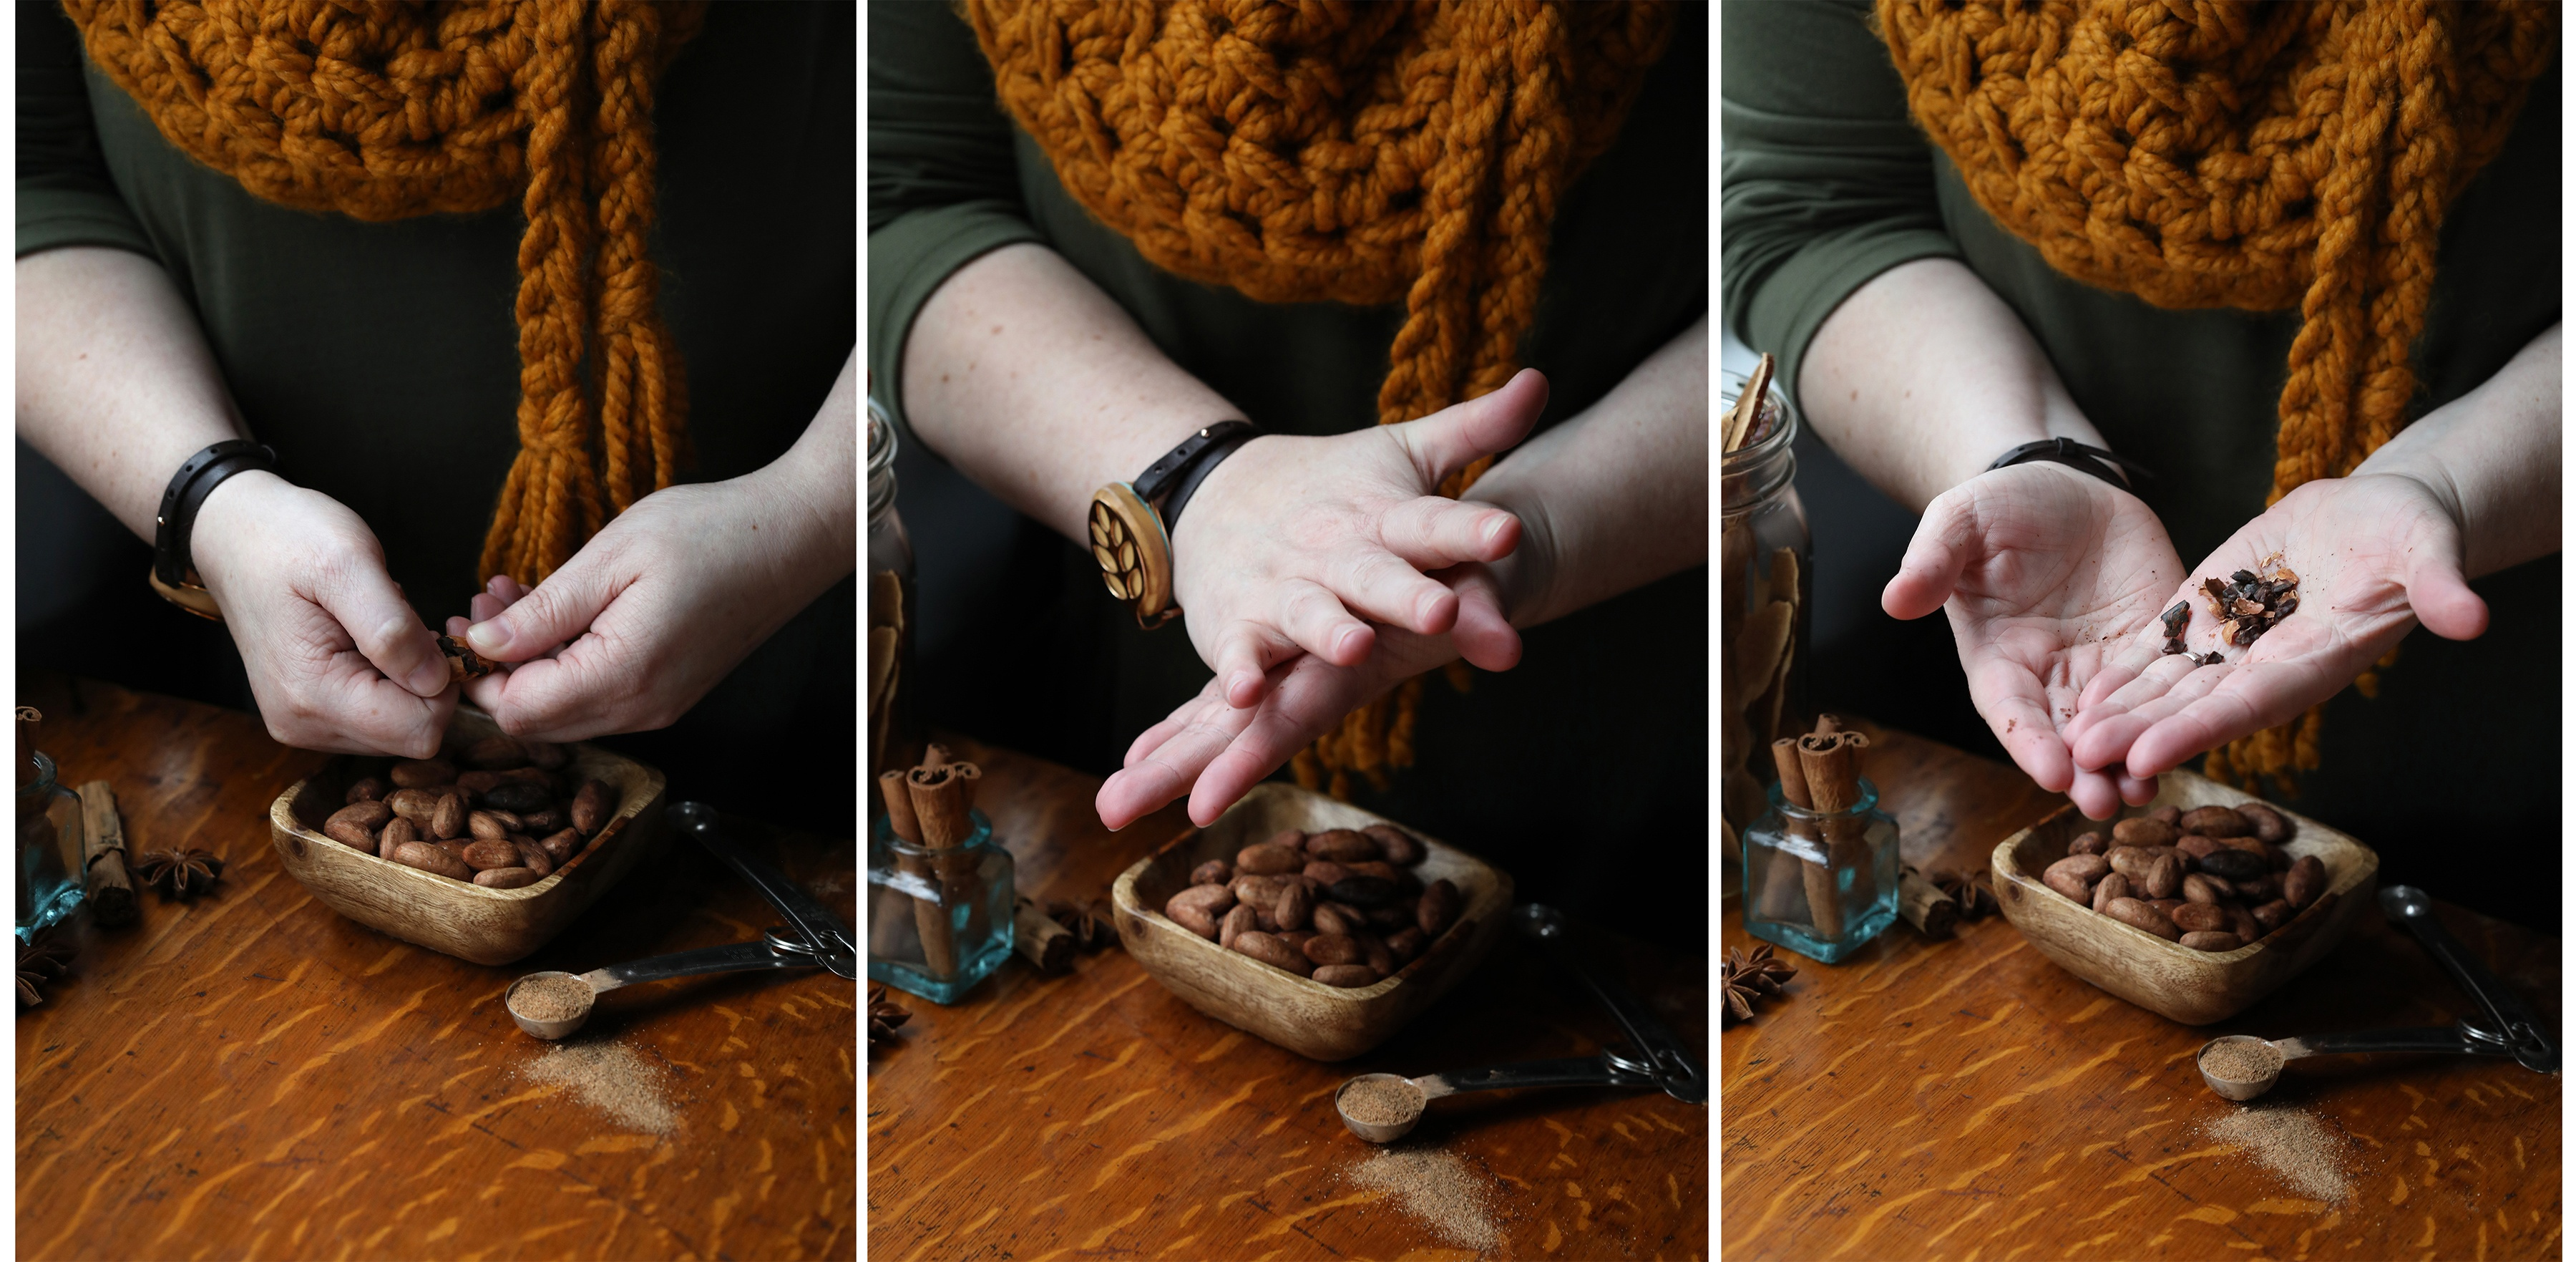 Hands rubbing and crushing whole cacao beans